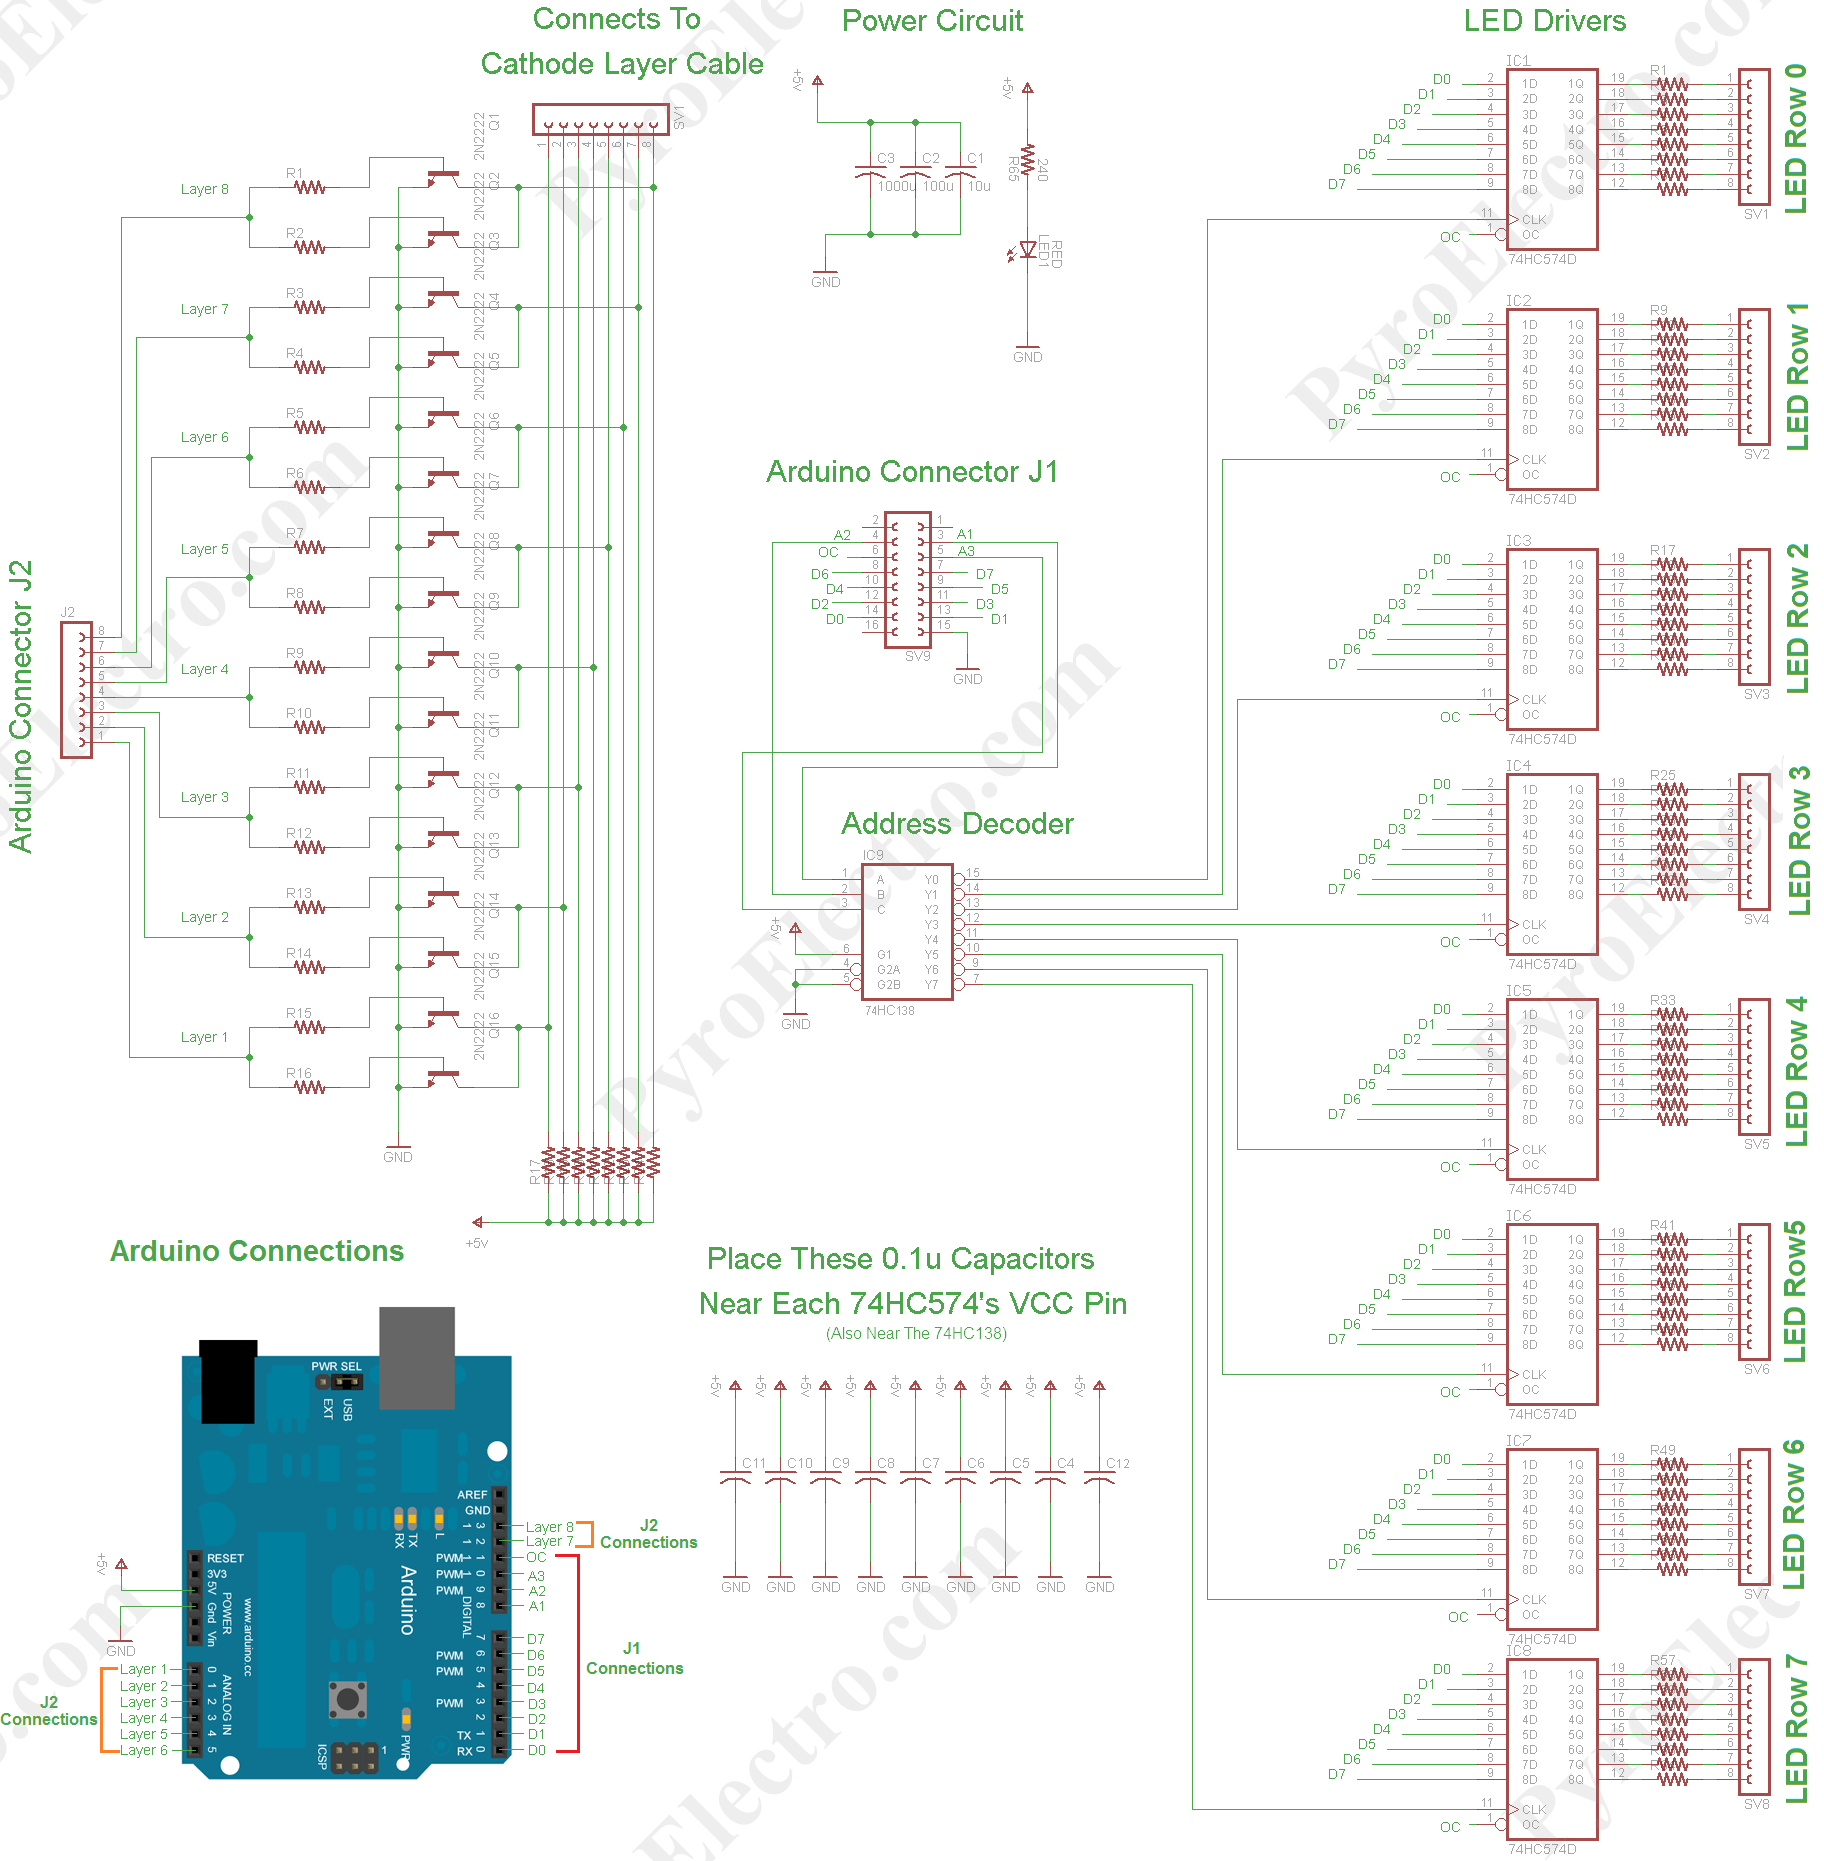 led related schematics circuits and diagram tutorials wiring